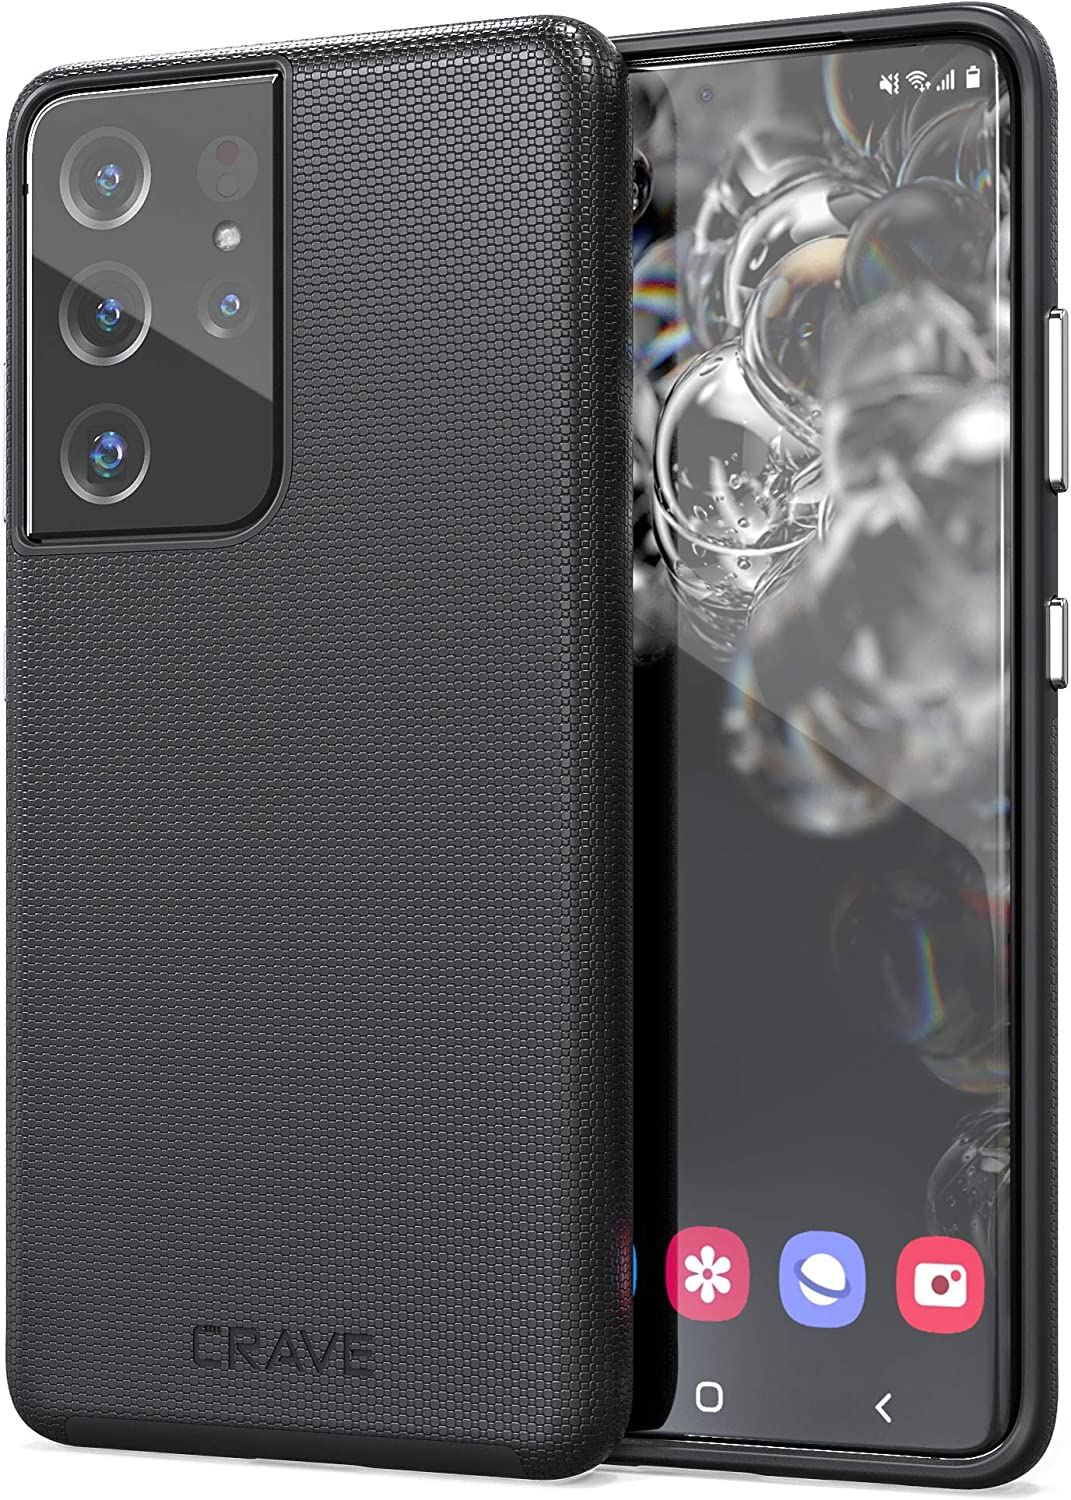 Crave Dual Guard for Galaxy S21 Ultra Case, Shockproof Protection Dual Layer Case for Samsung Galaxy S21 Ultra, S21 Ultra 5G (6.8 inch) - Black